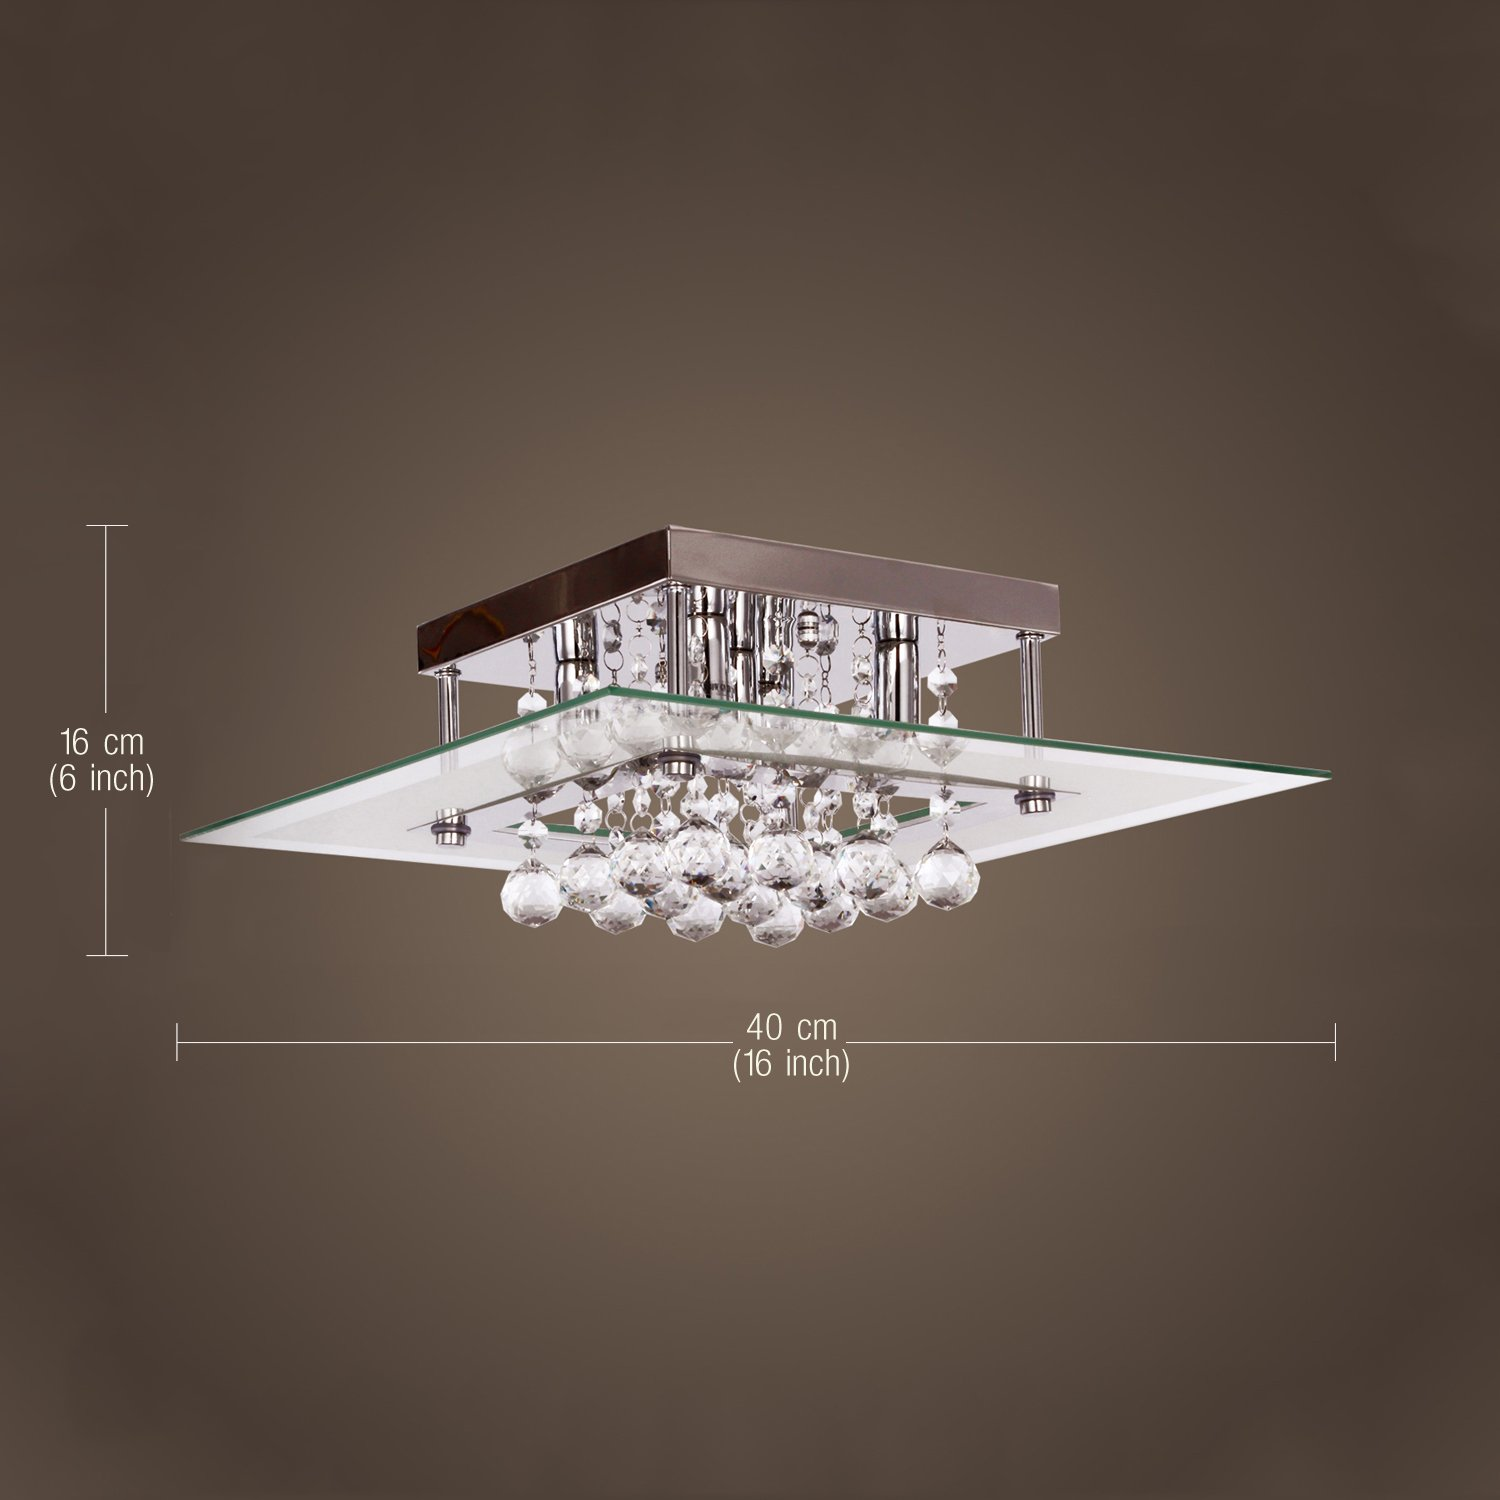 lightinthebox comtemporary crystal drop flush mount lights with   - lightinthebox comtemporary crystal drop flush mount lights with  lights insquare design modern home ceiling light fixture flush mount pendant light